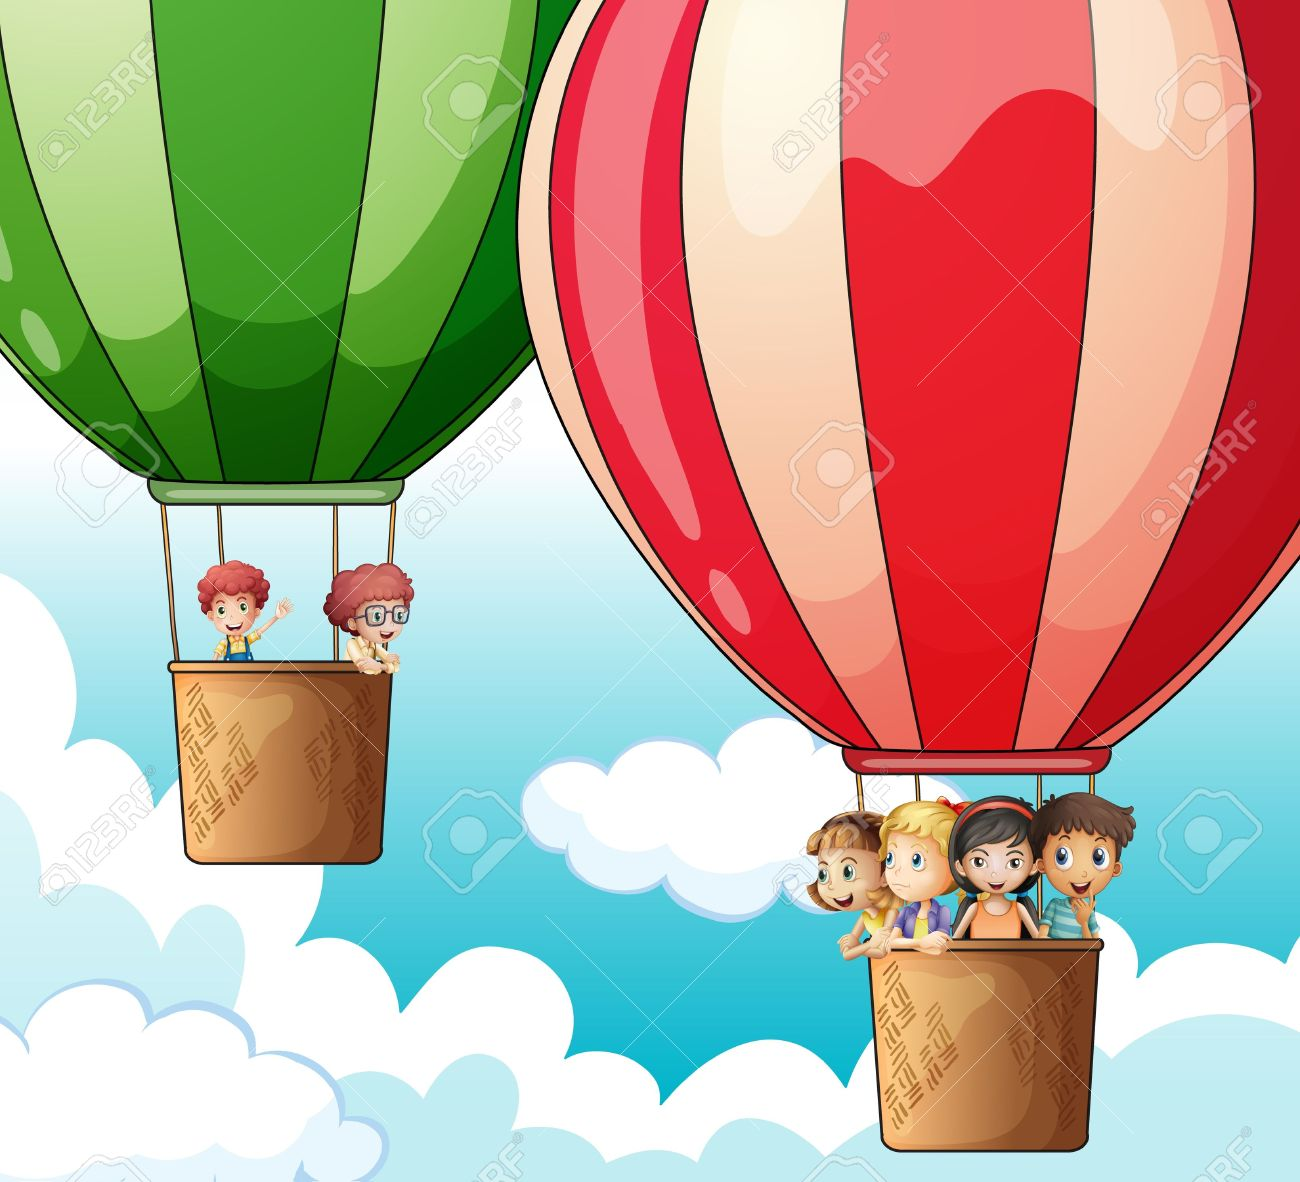 Illustration Of Two Hot Air Balloons Flying With Happy Kids.